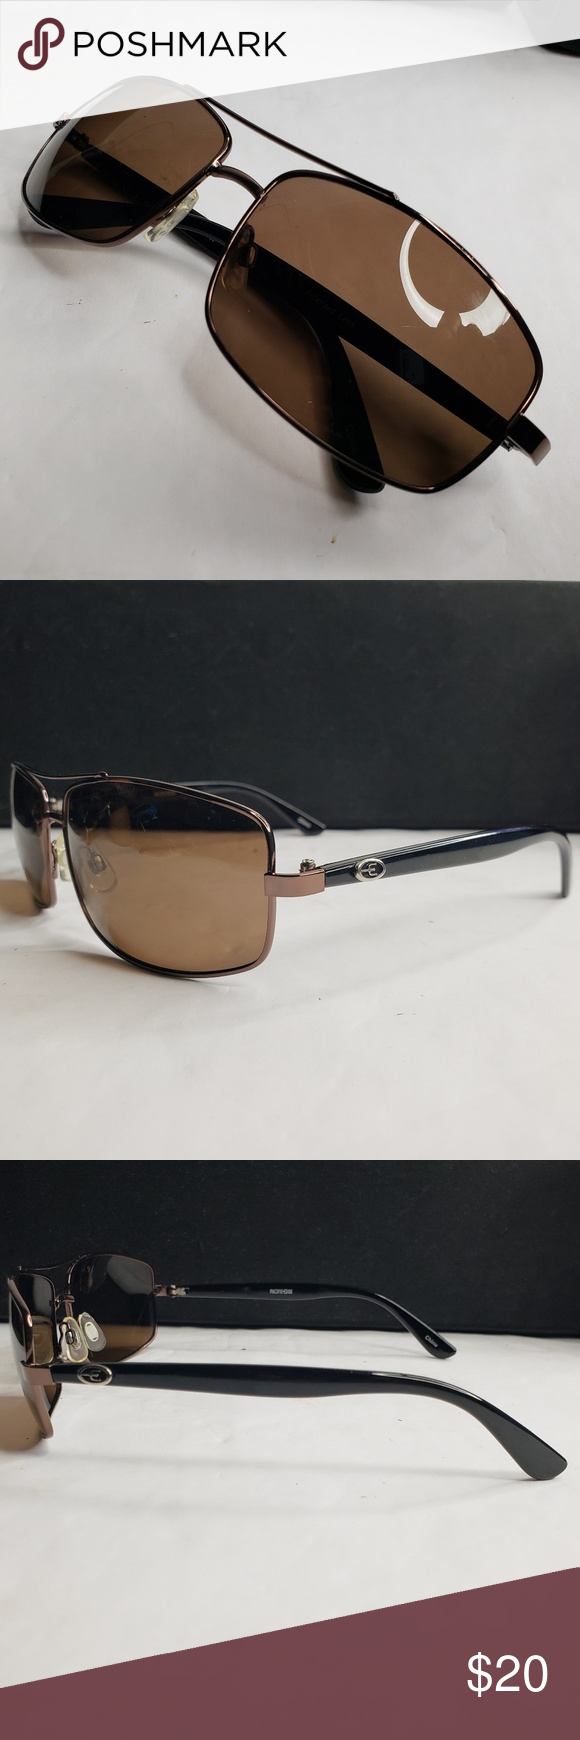 ff7ecfb400c ... Up for sale is a pre-owned pair of PACIFIC-EDGE Polarized Sunglasses.  The sunglasses are in great condition. PACIFIC-EDGE Accessories Sunglasses